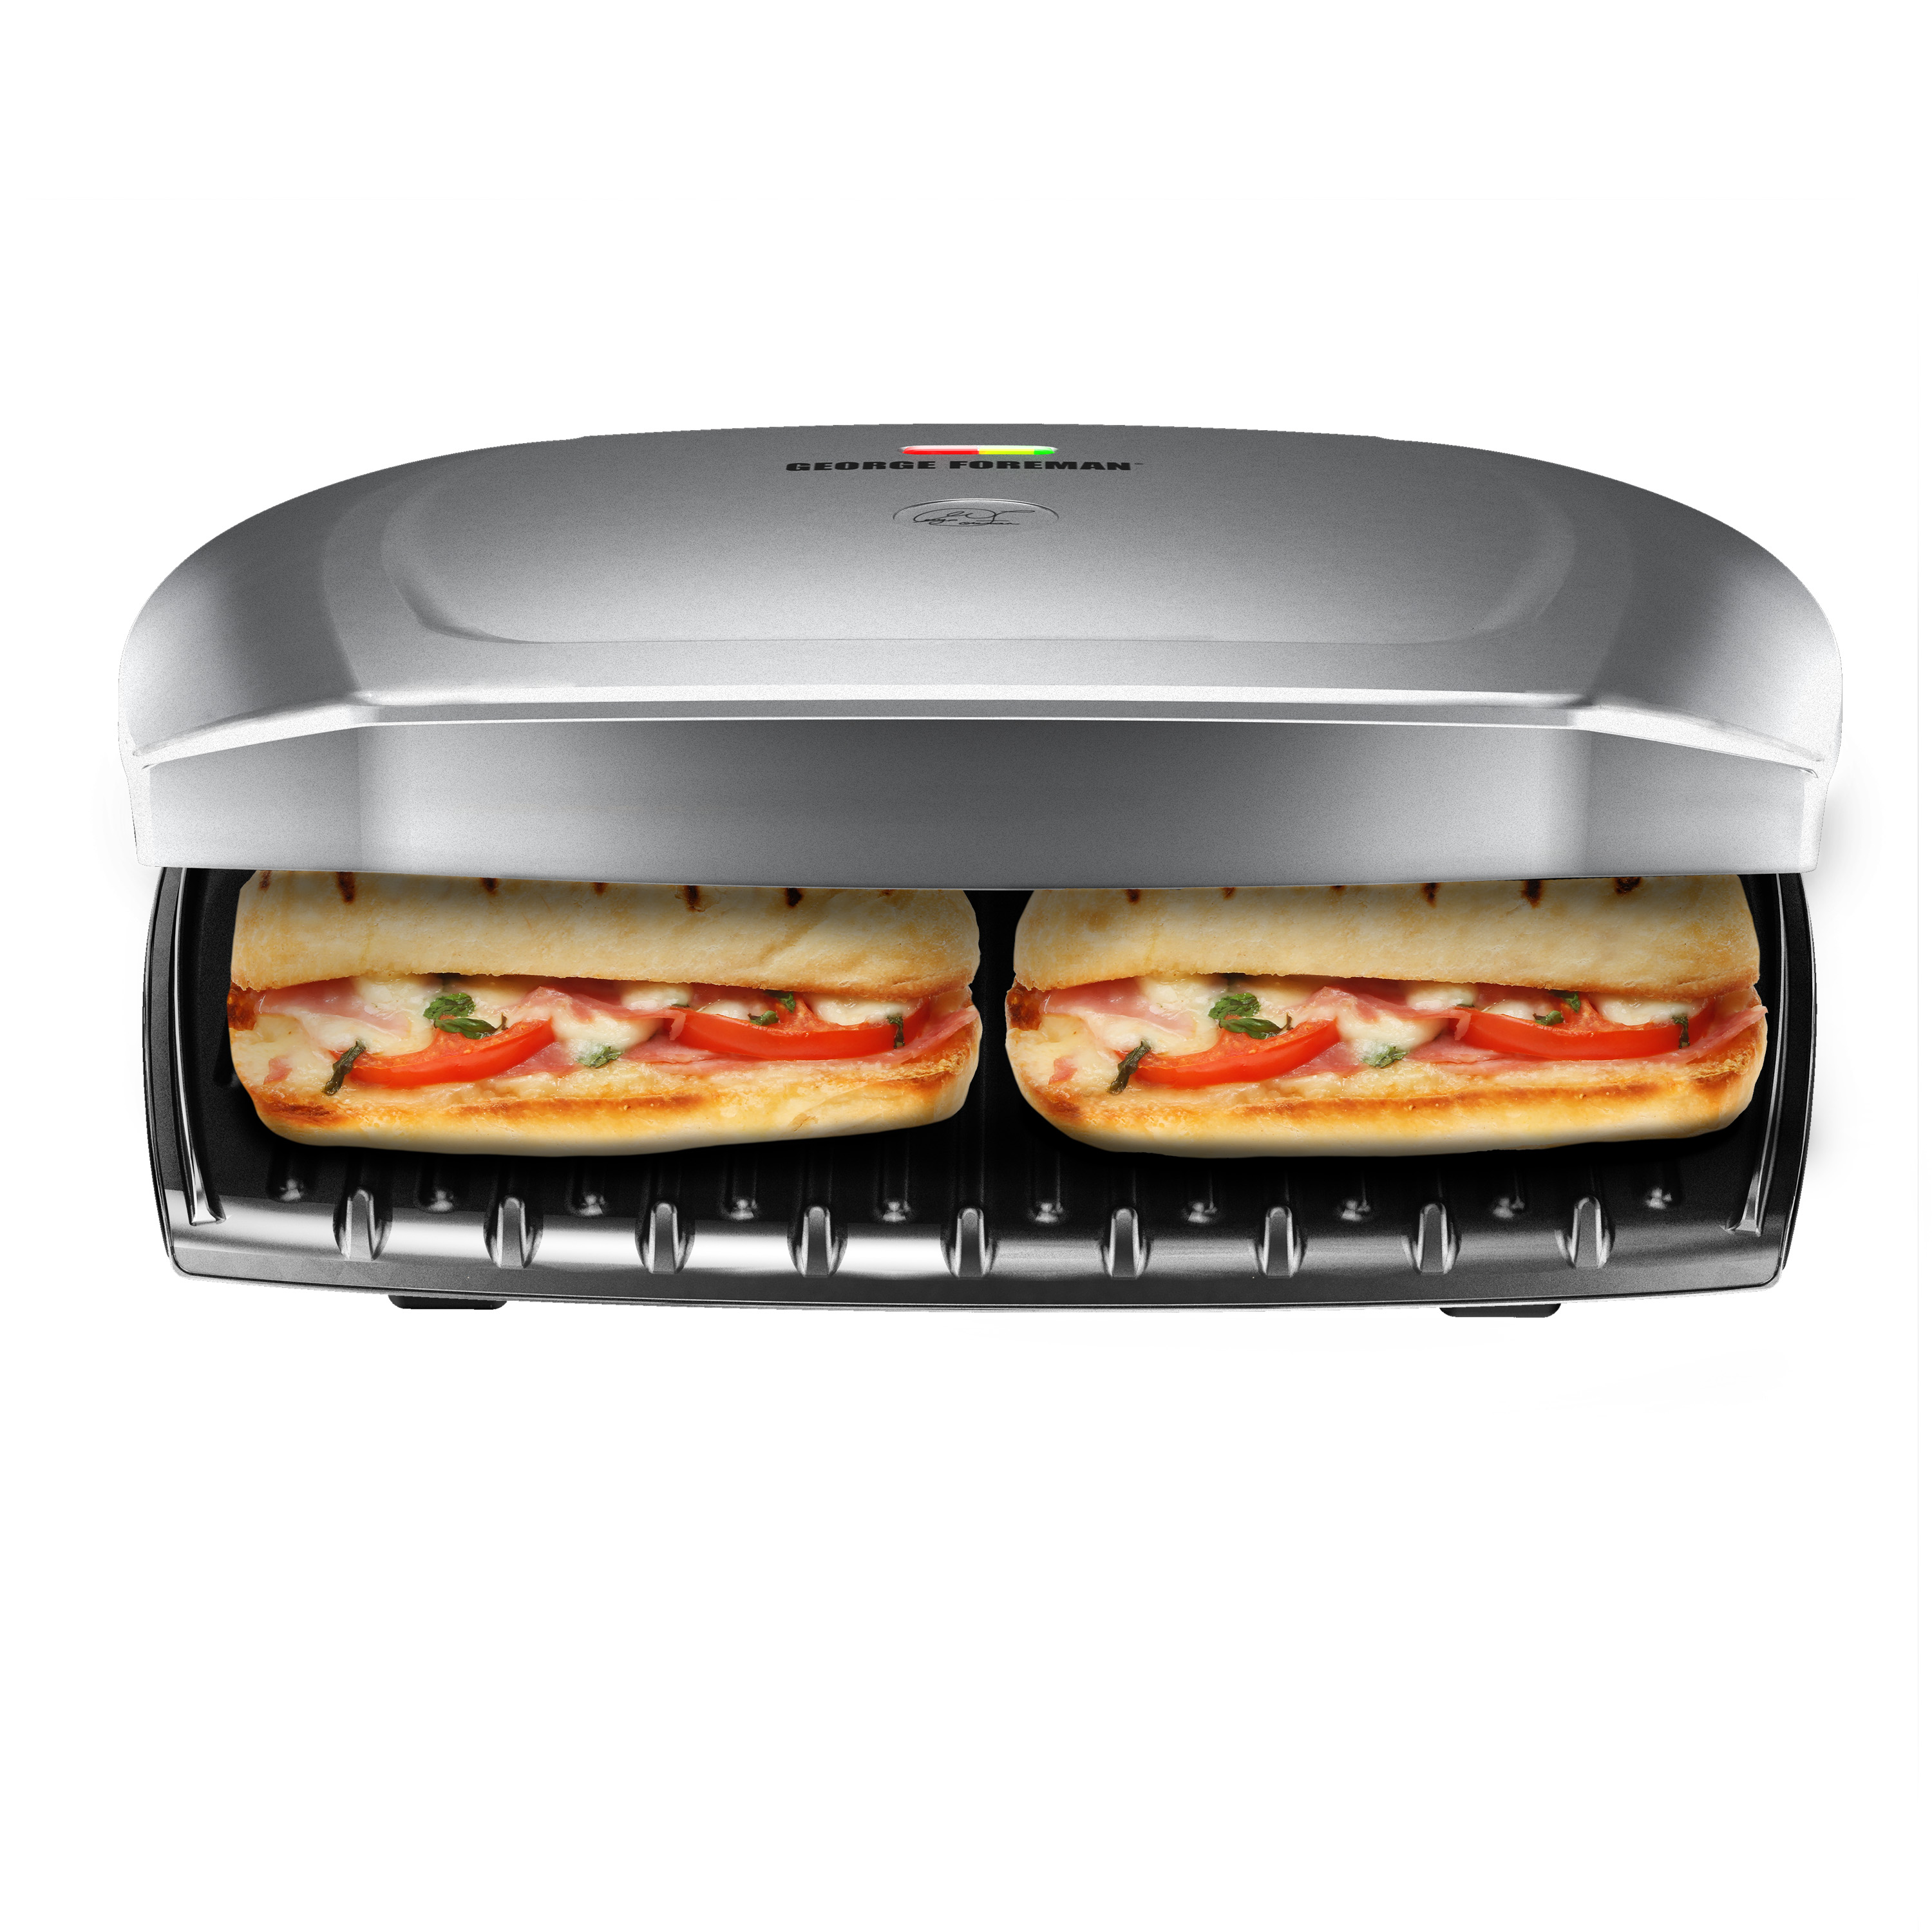 George Foreman 9-Serving Classic Plate Electric Indoor Grill and Panini  Press, Platinum, GR2144P - Walmart.com